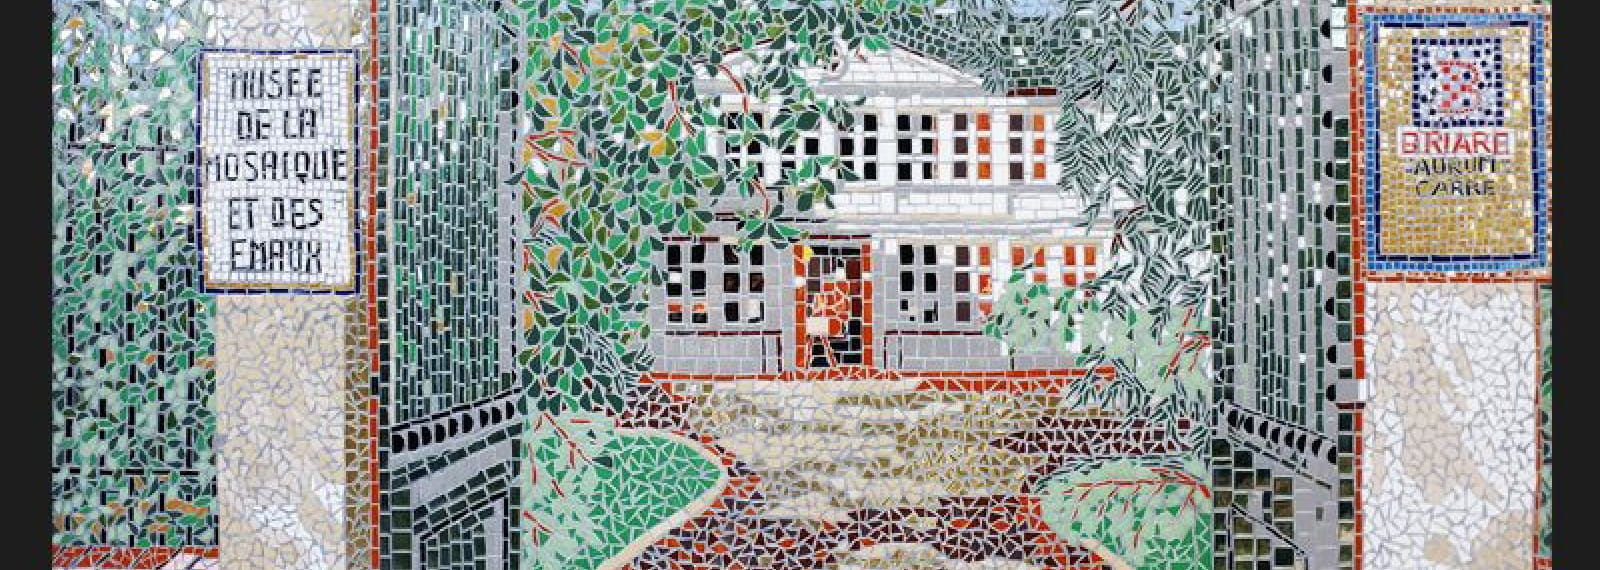 musee-mosaique-briare